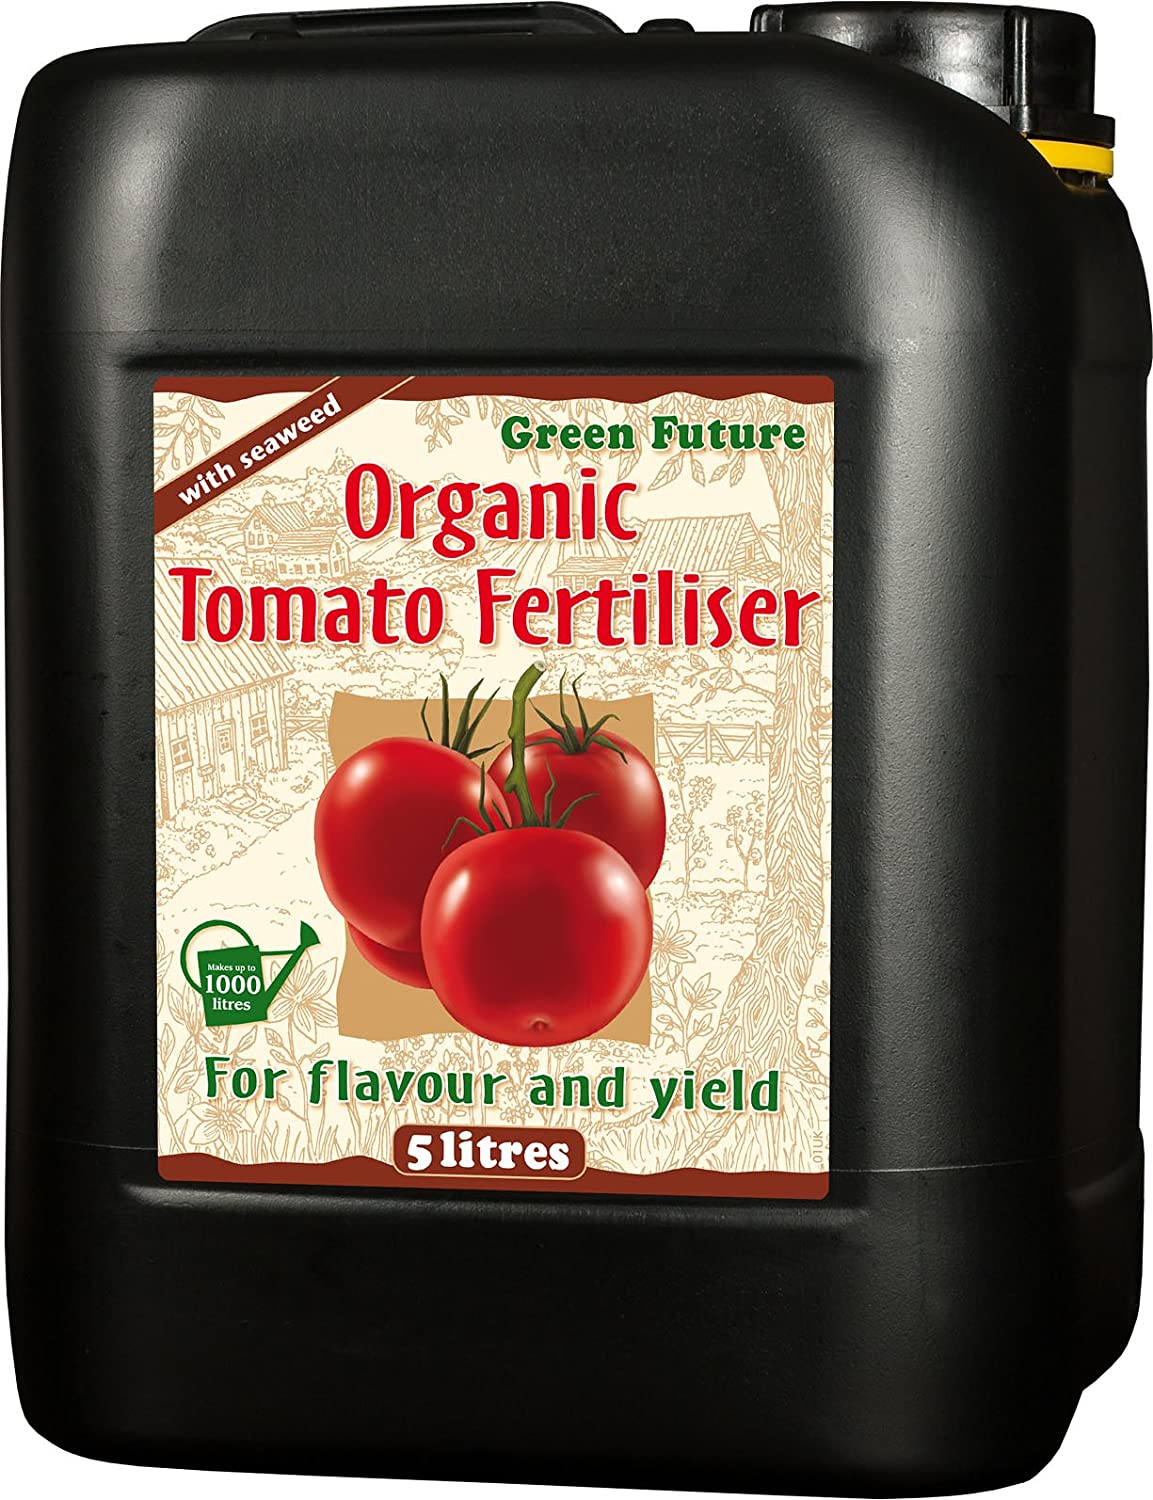 Growth Technology Ltd 05-210-160 Green Future Organic Tomato Fertiliser 5 Litre